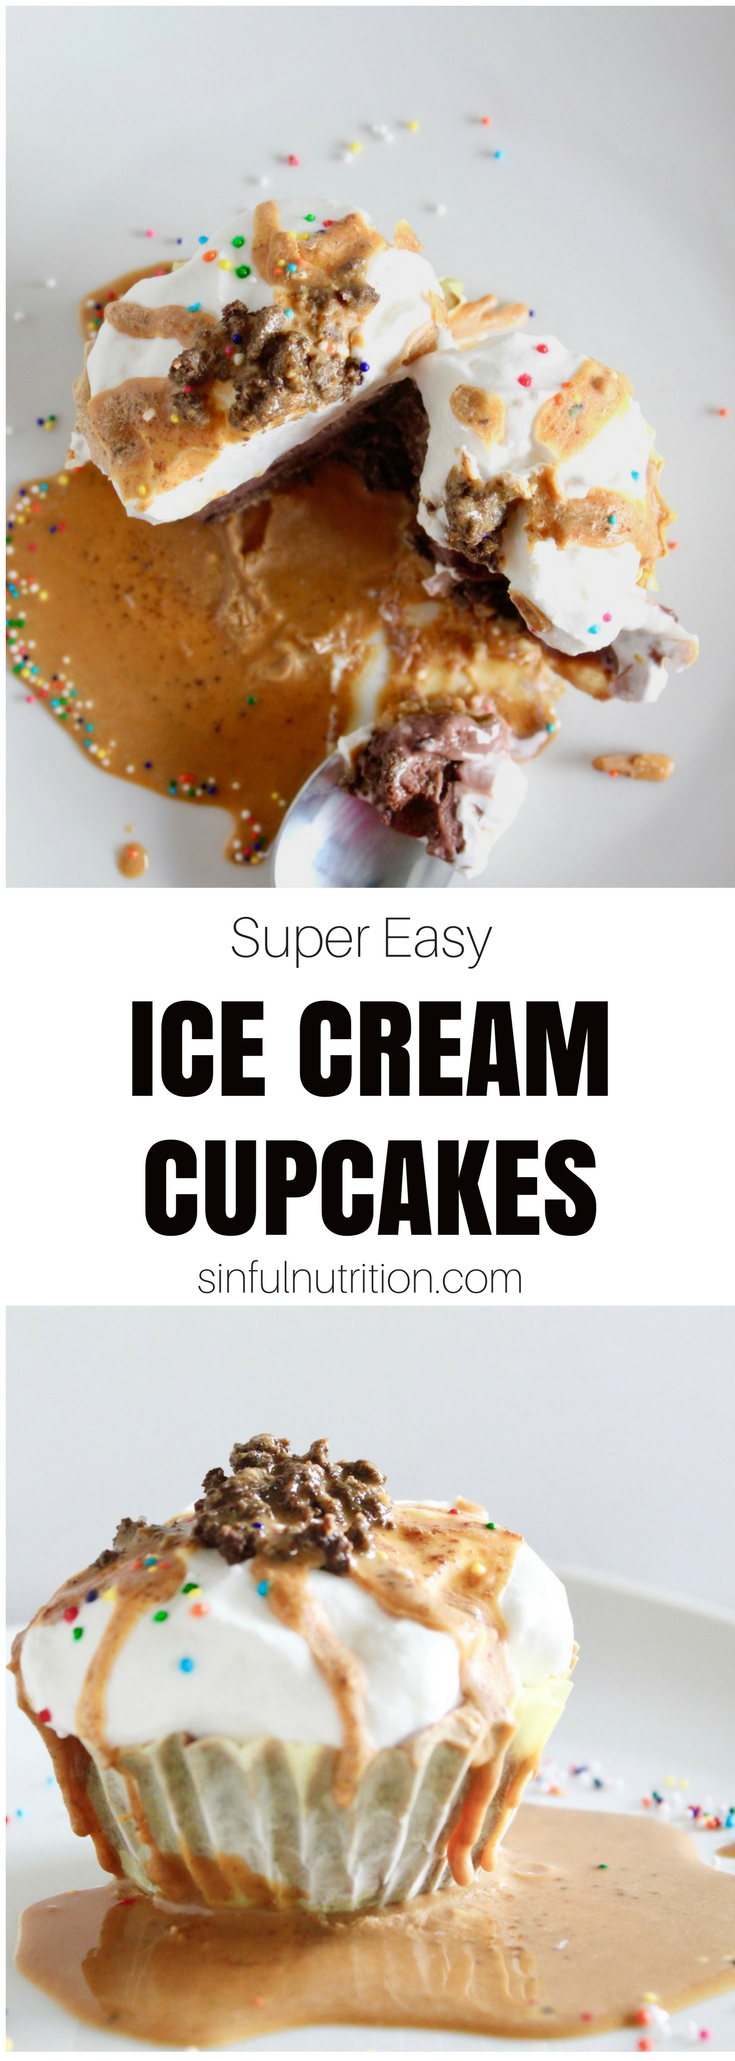 Super Easy Ice Cream Cupcakes -- A must-try recipe for any summer party or birthday! Layers of chocolate peanut butter crunchies, creamy ice cream, and whipped cream frosting. | @sinfulnutrition